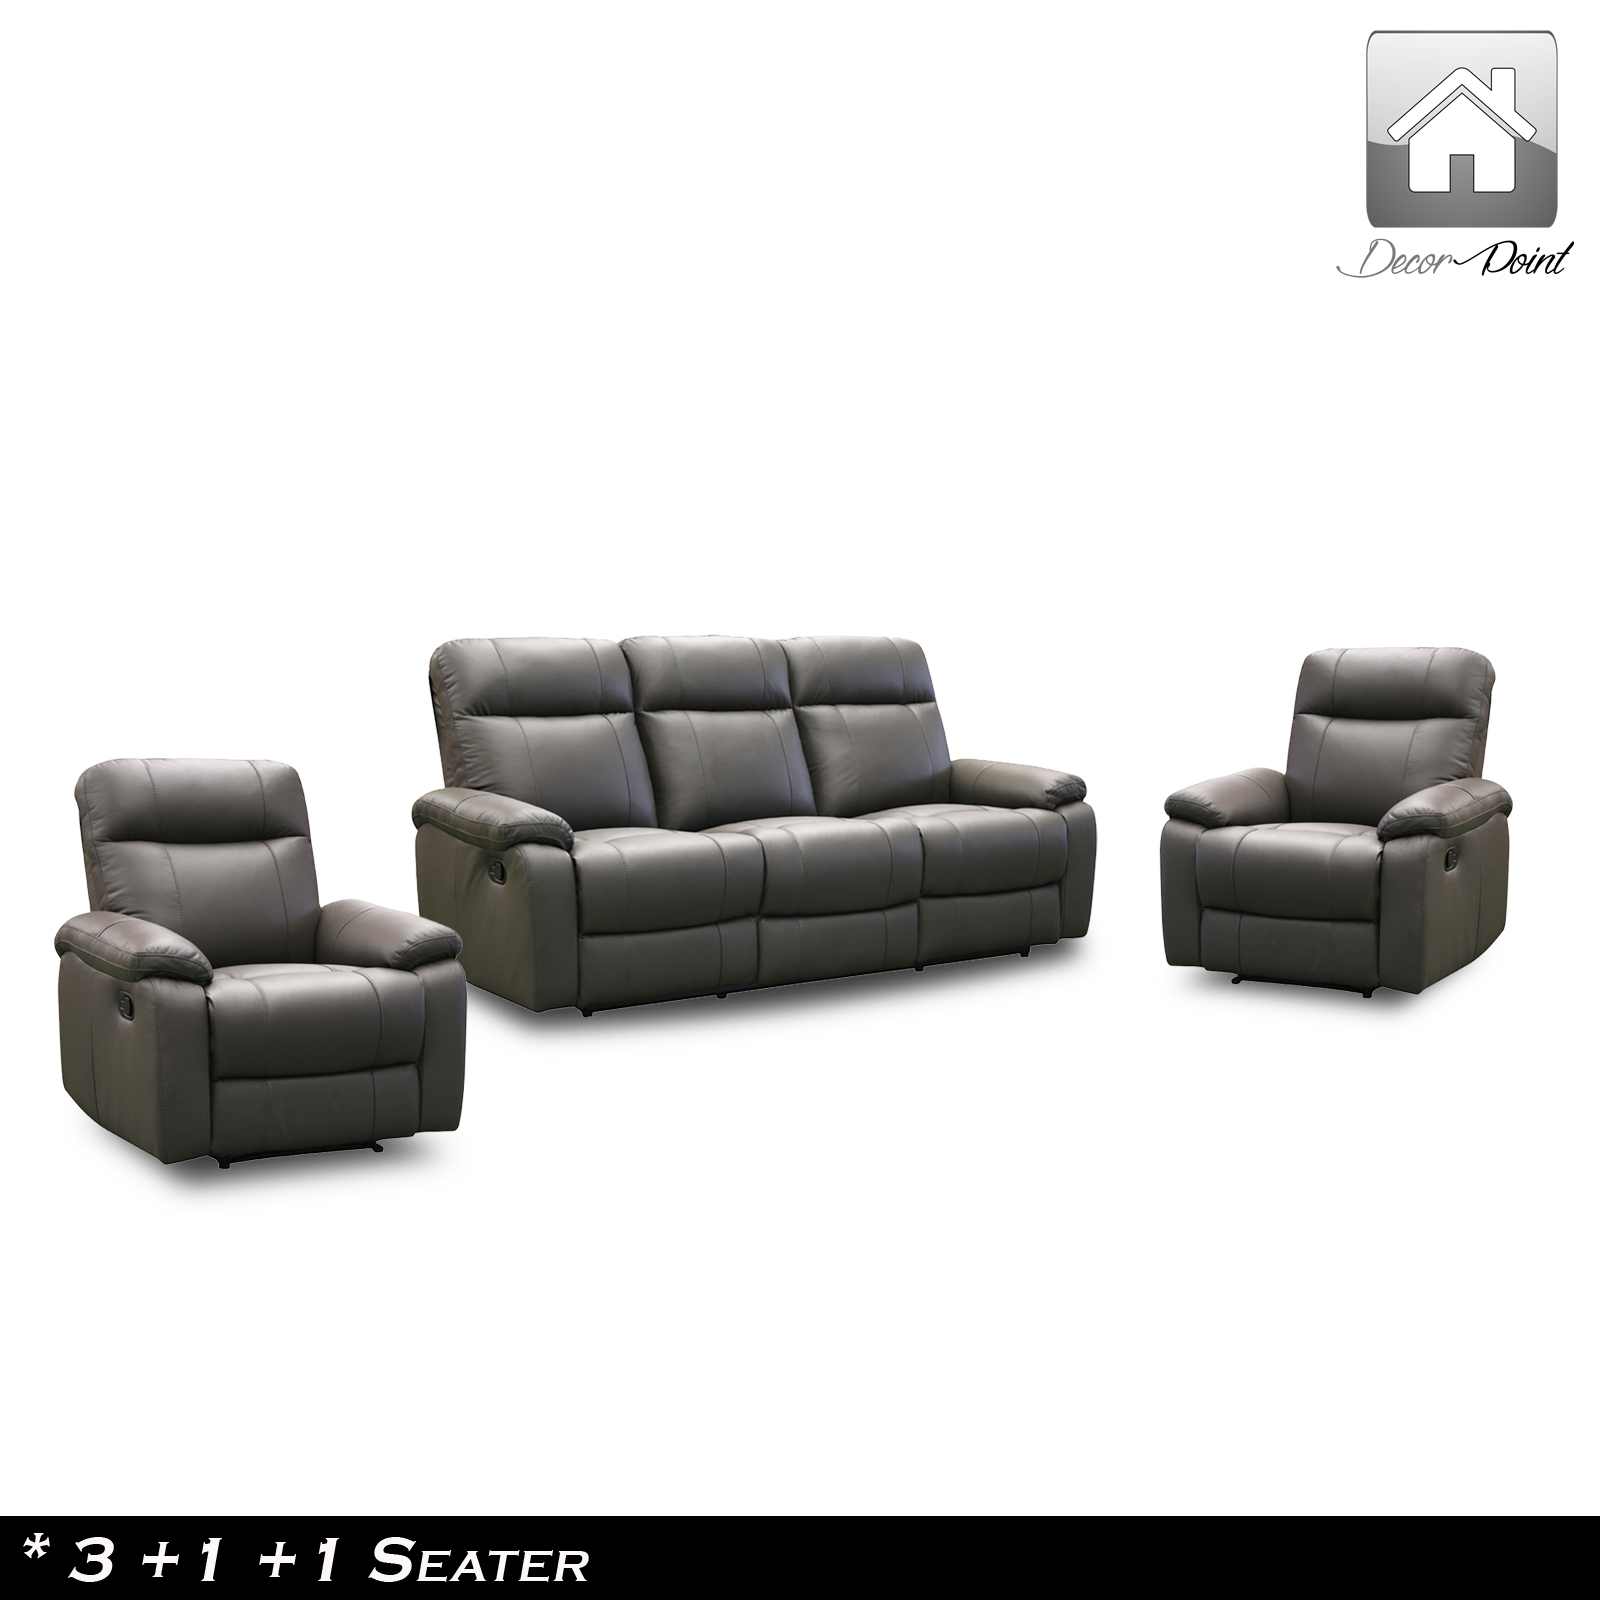 New Genuine Leather 3 Piece 5 Seater Luxurious Recliners